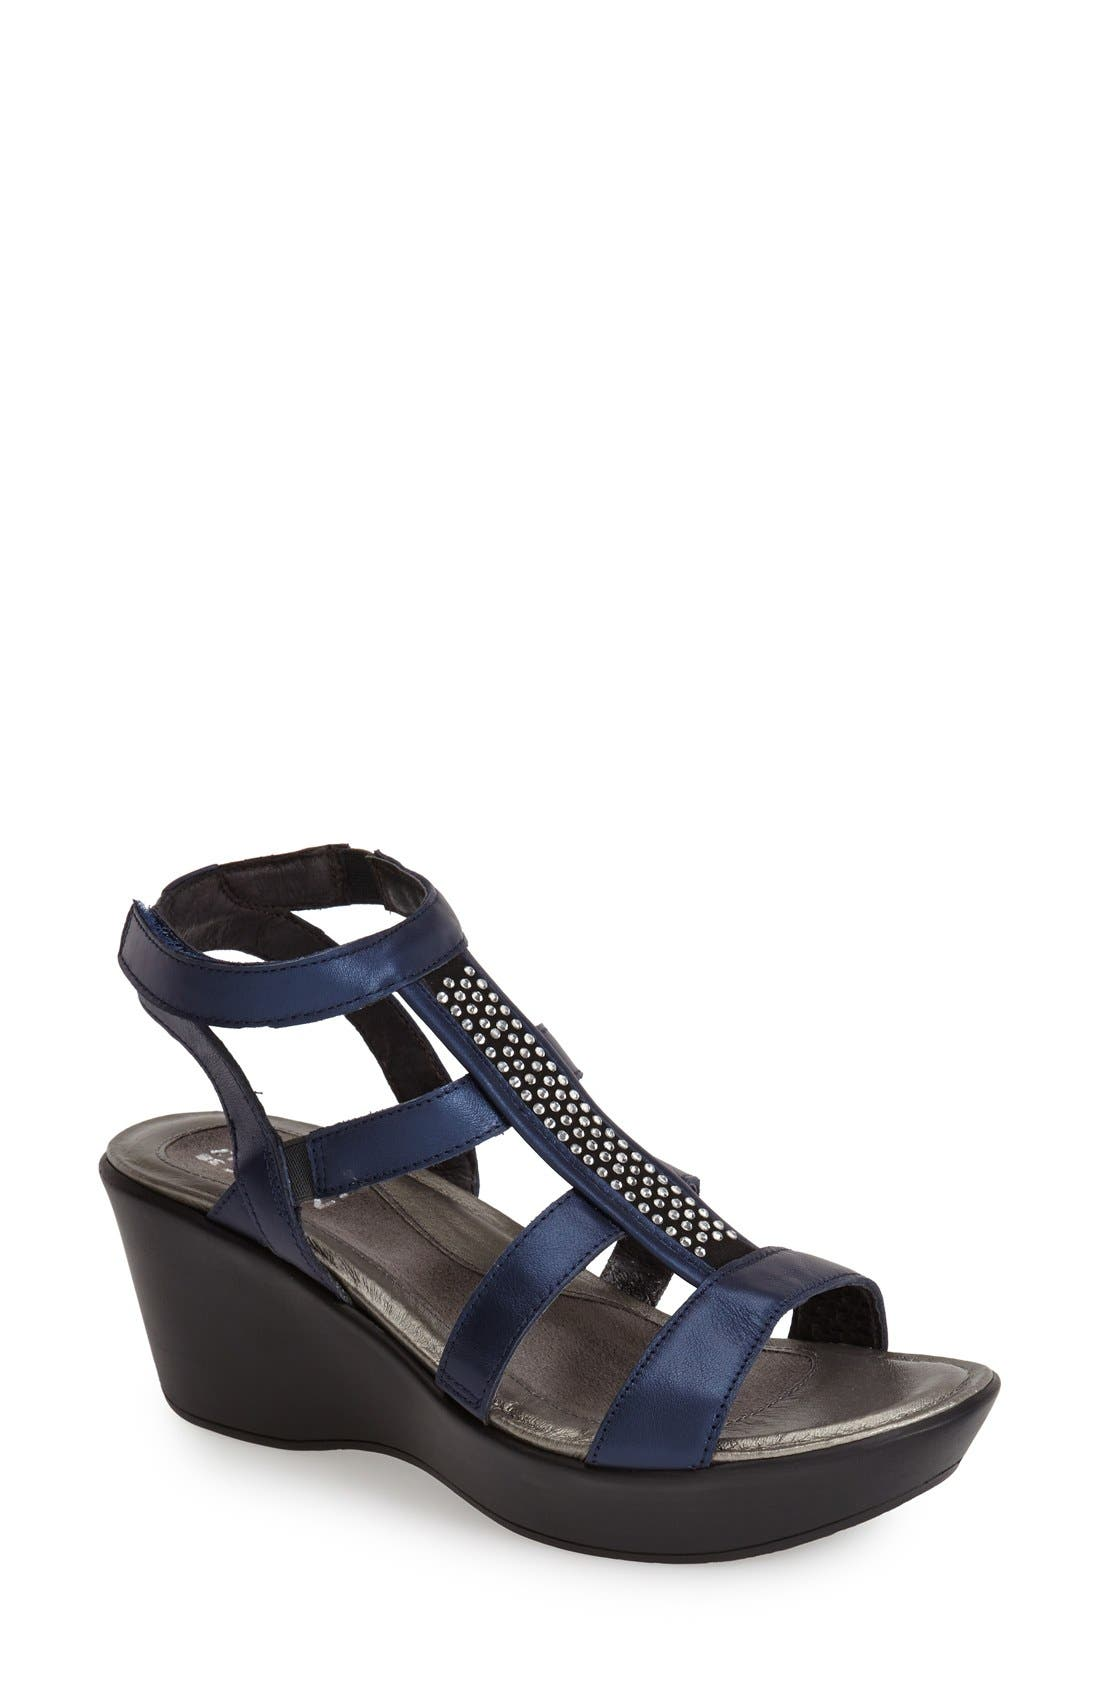 'Mystery' Platform Wedge Sandal,                             Main thumbnail 3, color,